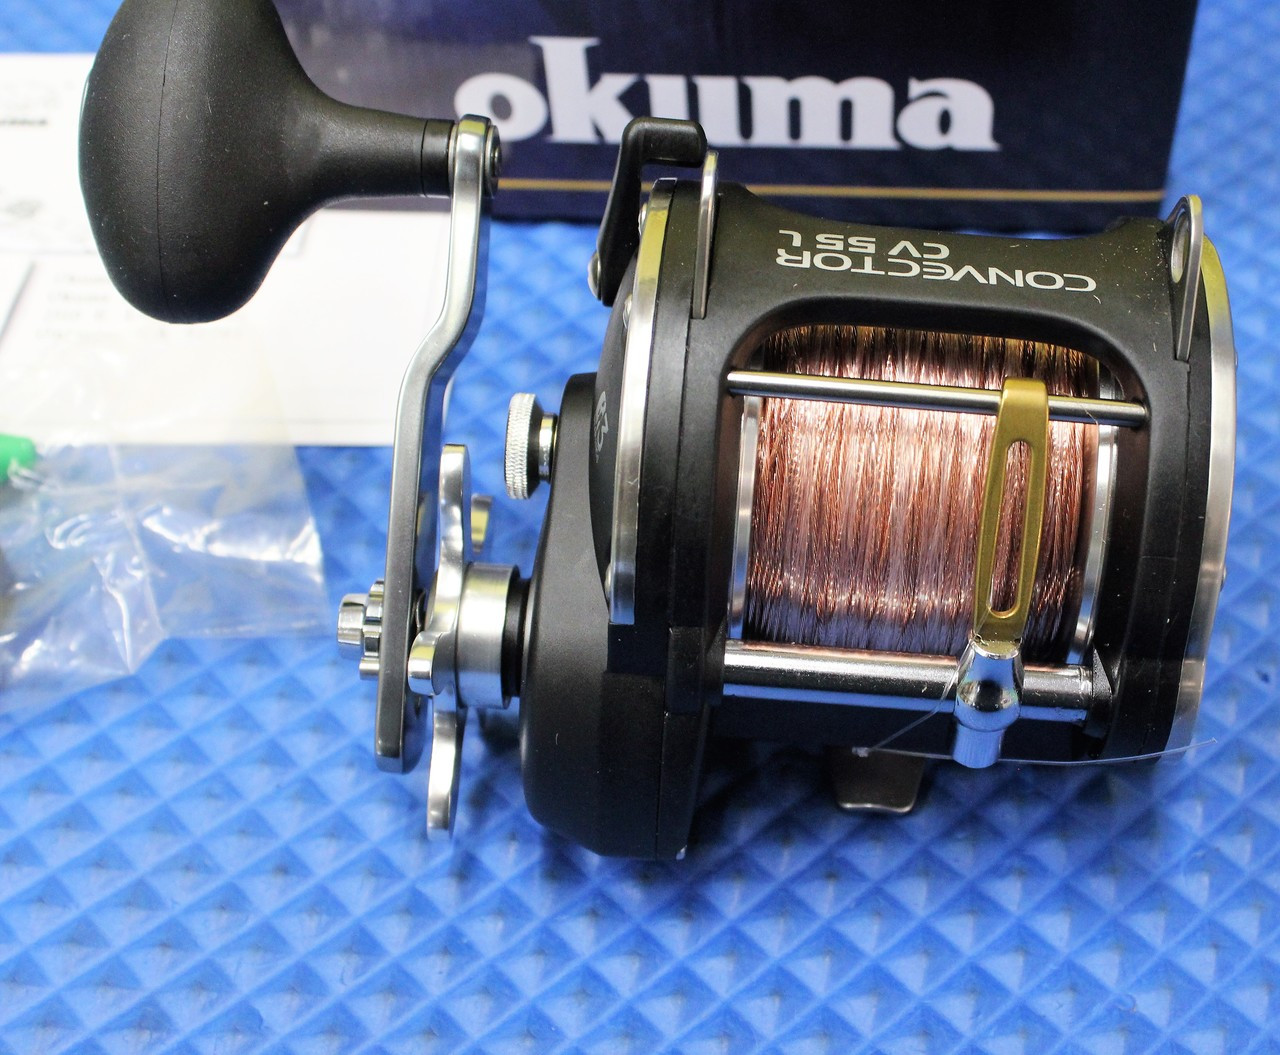 Okuma Convector Levelwind Reel CV 55L Prespooled With 45# Copper, 25# Solar Green Backing, 50 Feet 20# Leader CHOOSE YOUR COPPER LENGTH